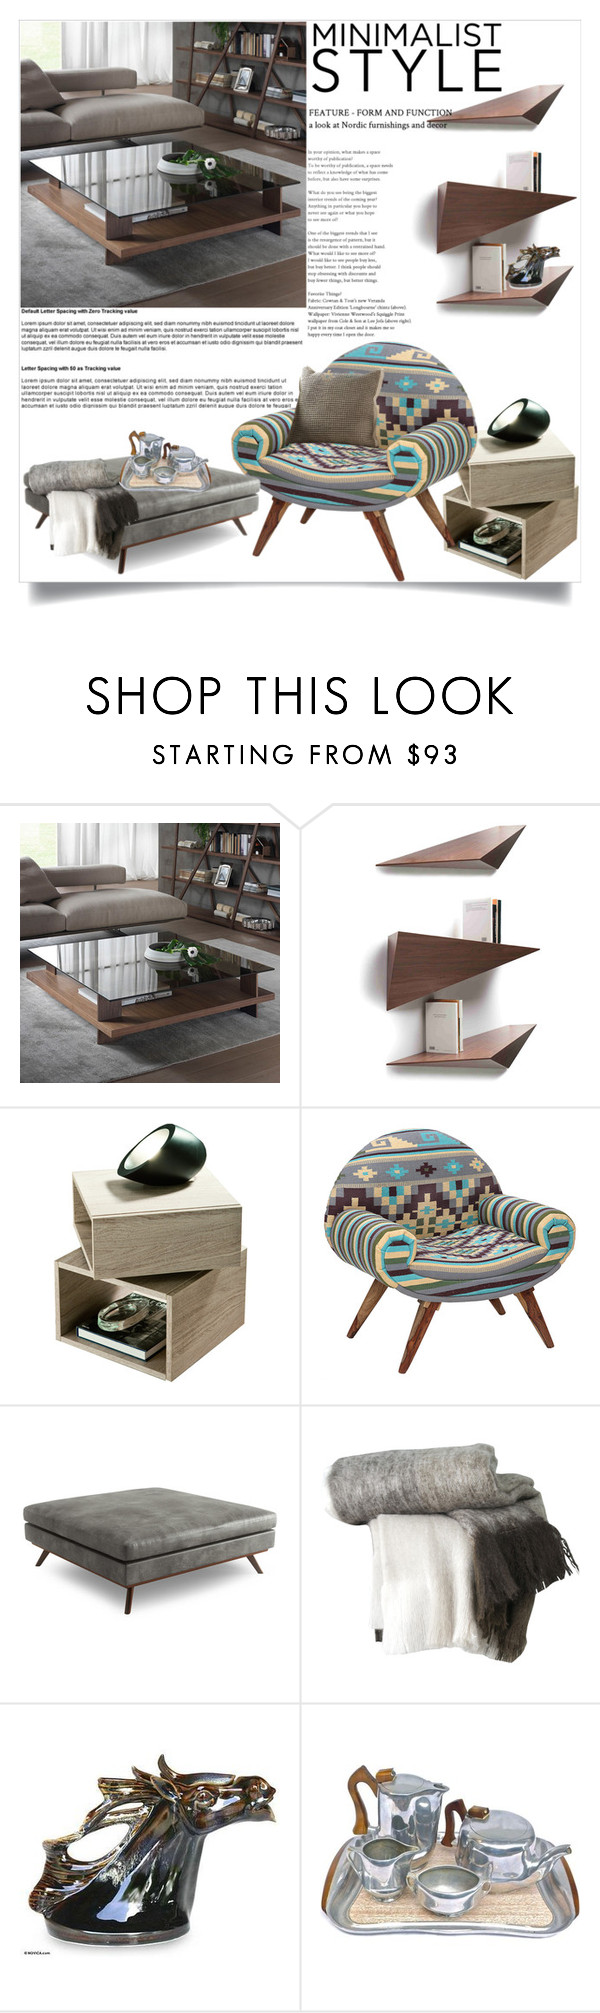 """""""Minimalist Home Stylings"""" by clotheshawg ❤ liked on Polyvore featuring interior, interiors, interior design, home, home decor, interior decorating, Pacini & Cappellini, Tonon, Karma Living and Thrive"""